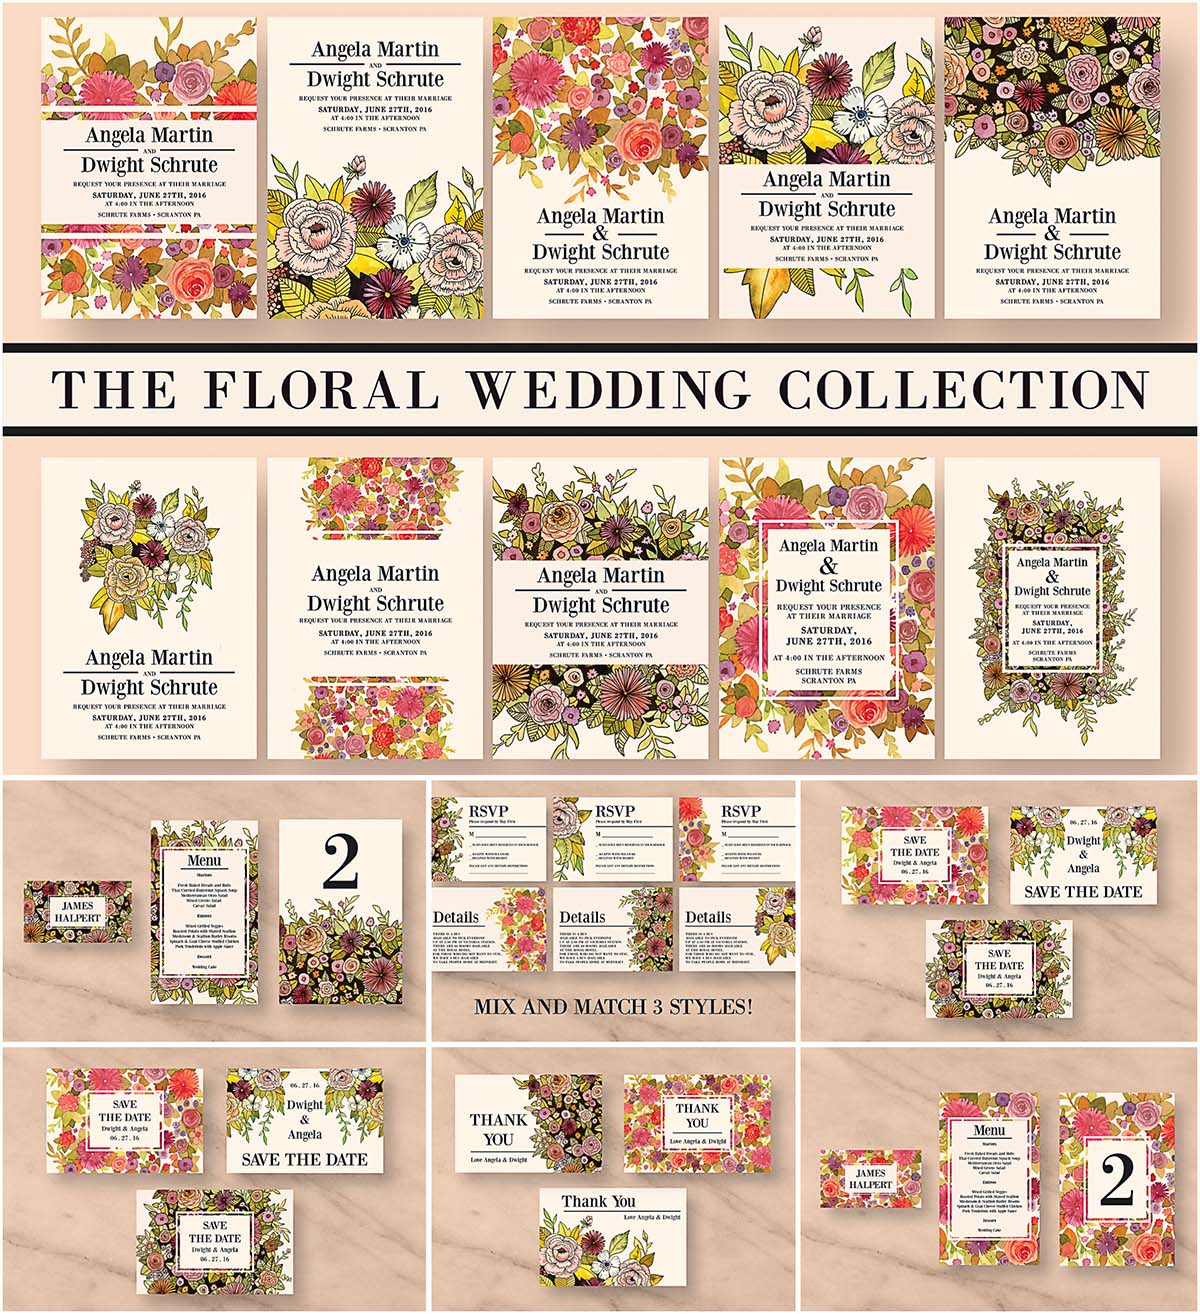 Vintage floral wedding invitation bundle | Free download